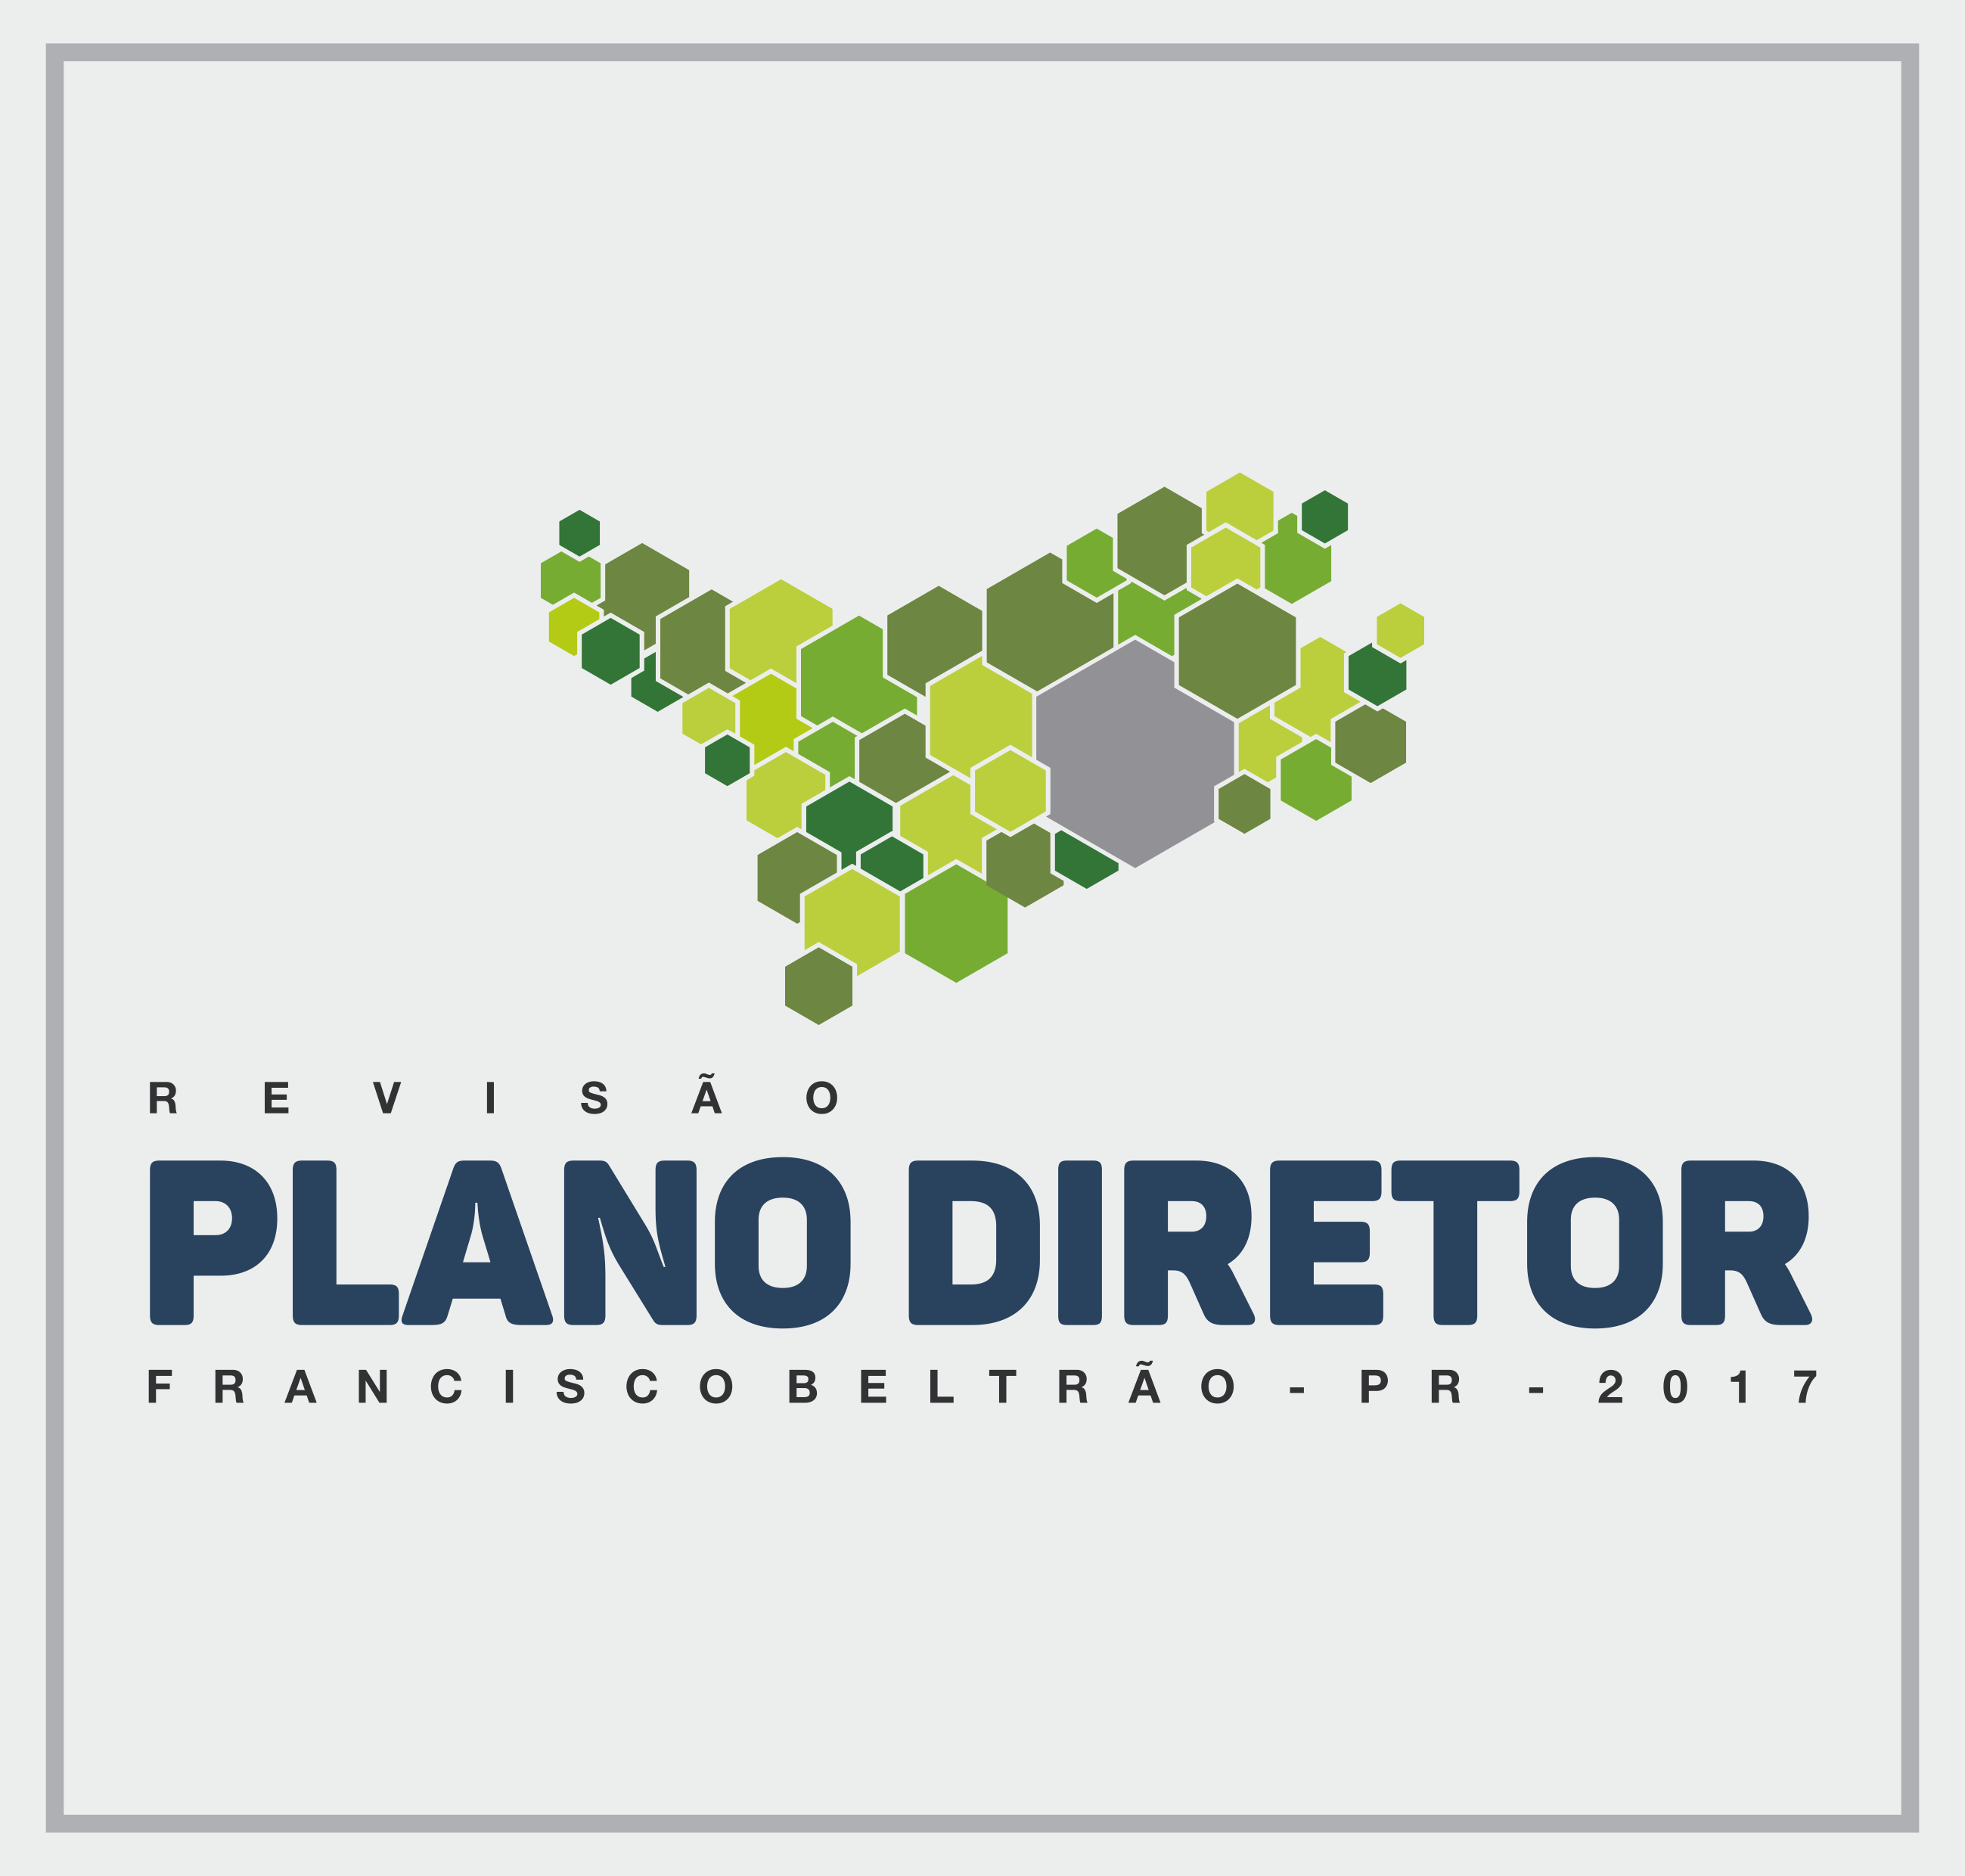 REVISÃO DO PLANO DIRETOR 2017